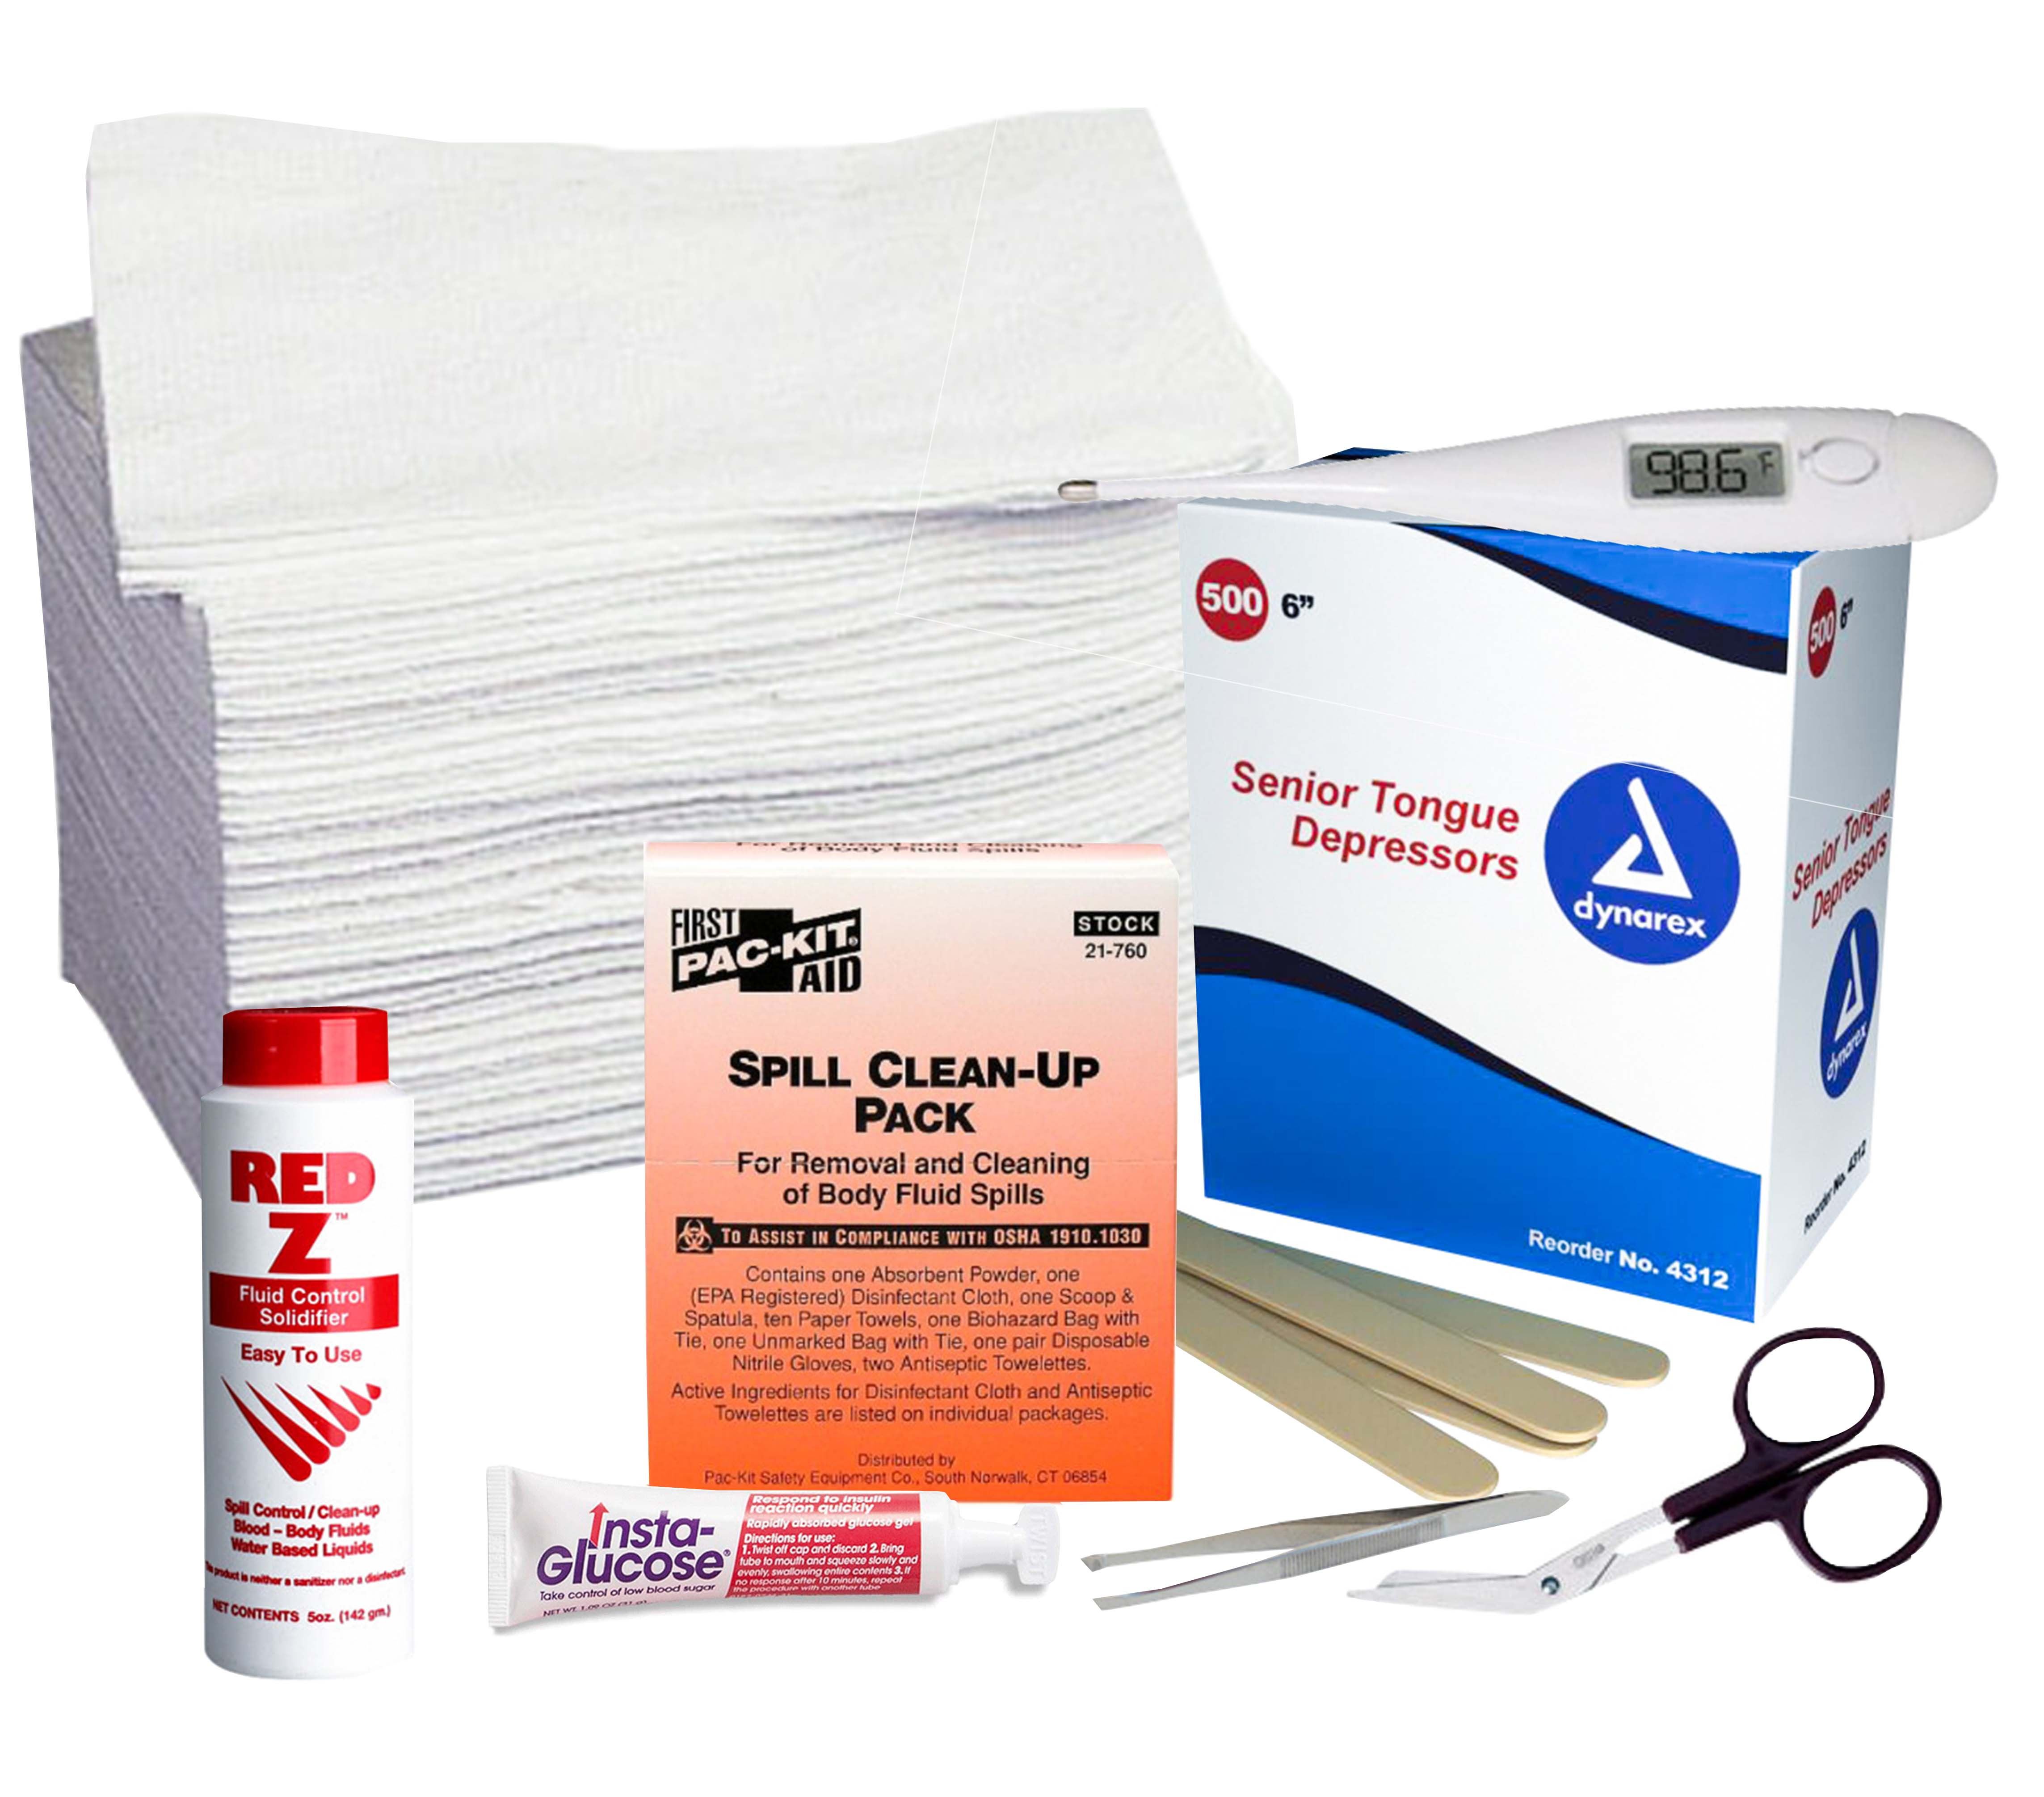 First Aid Room Supplies